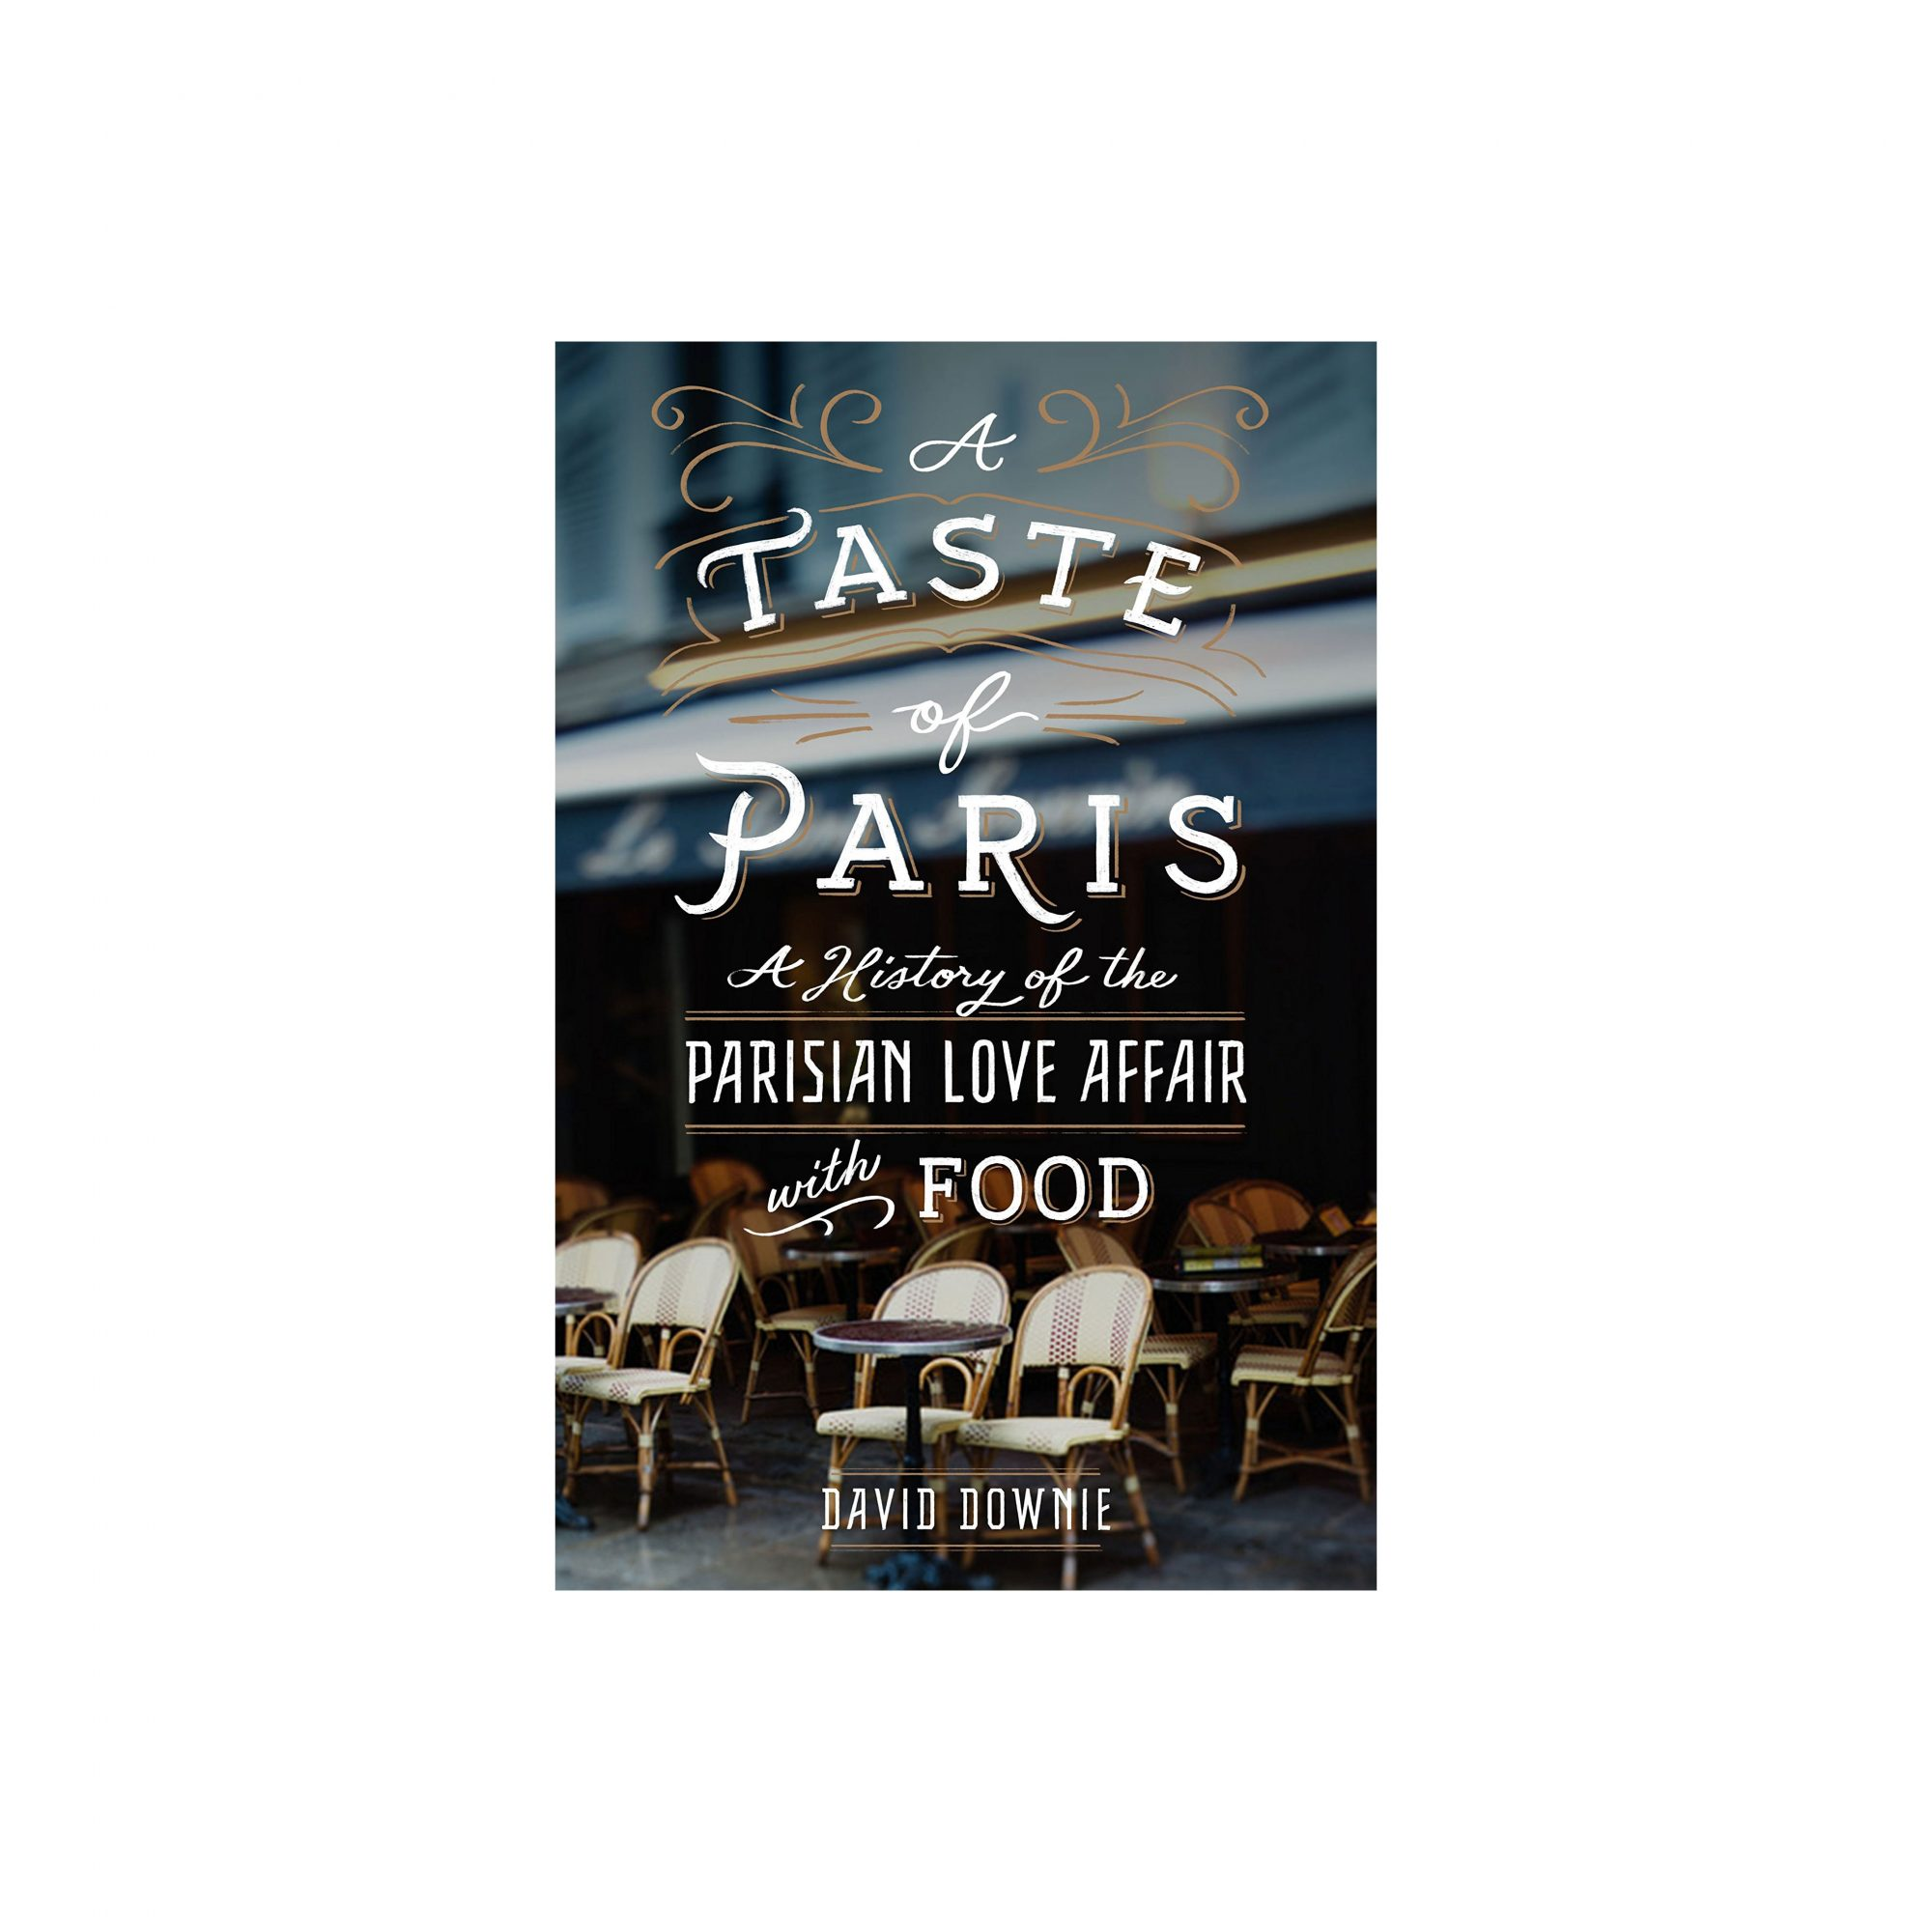 A Taste of Paris: A History of the Parisian Love Affair with Food, by David Downie